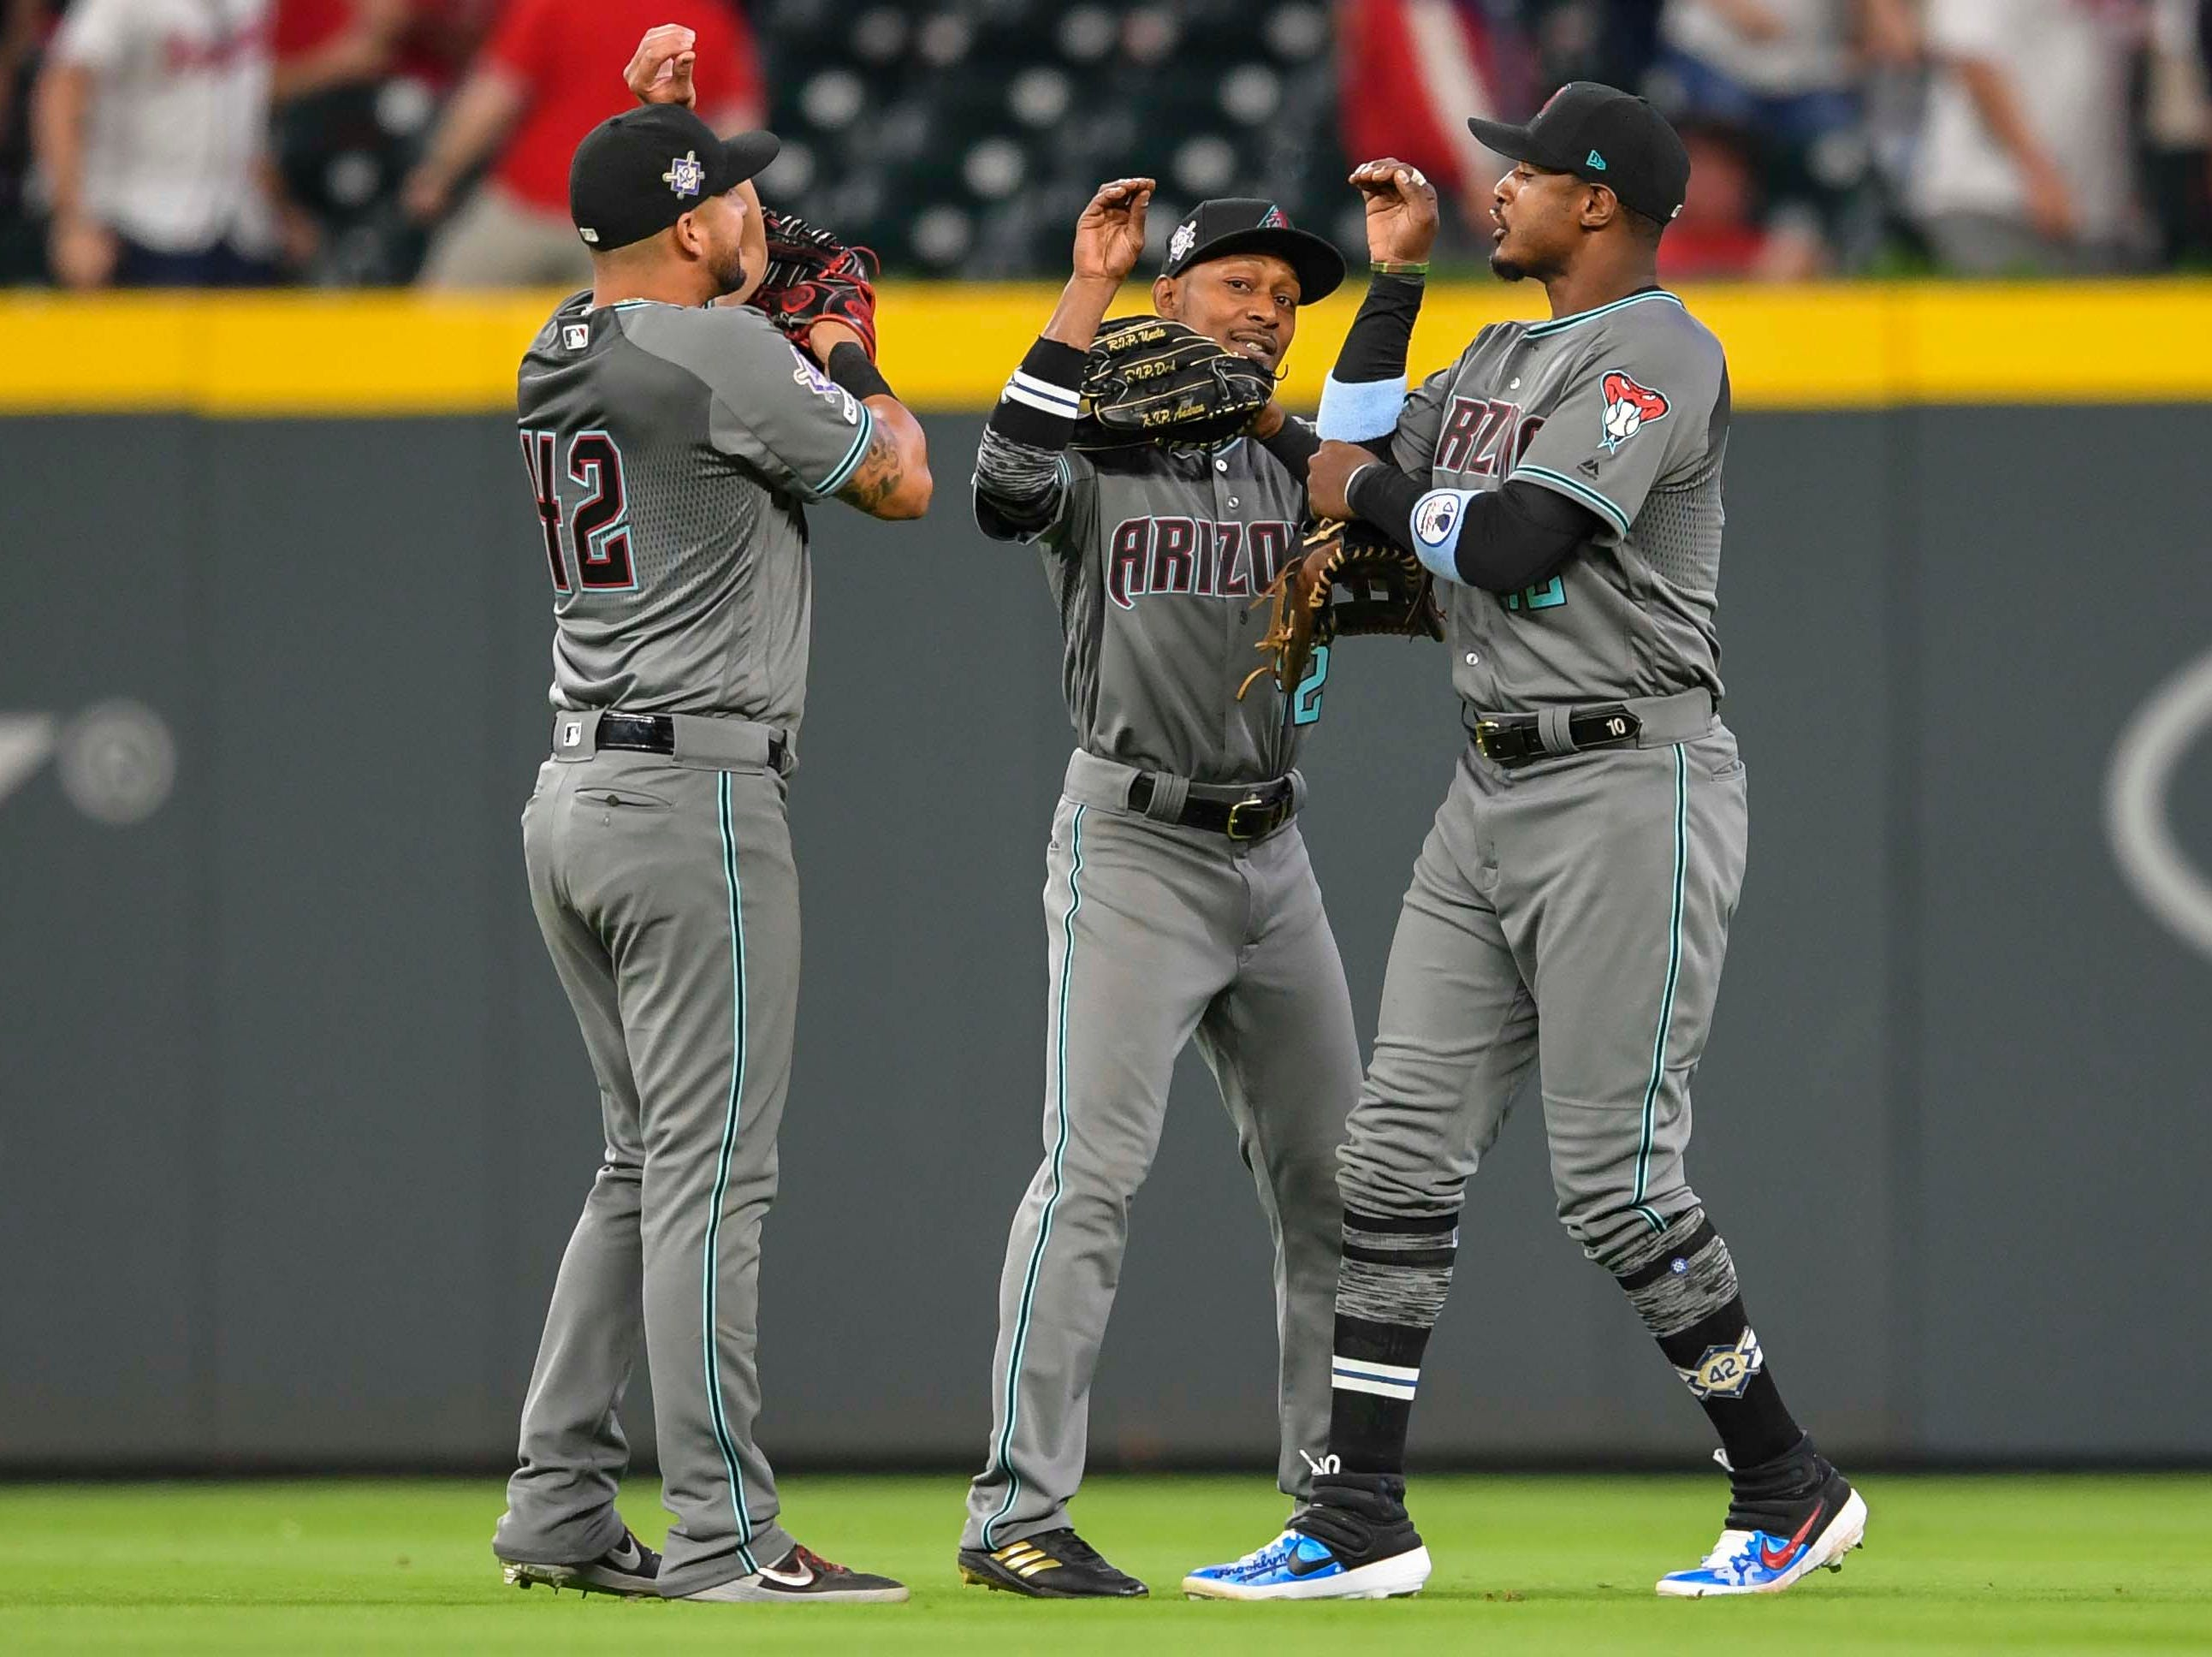 Apr 16, 2019; Atlanta, GA, USA; Arizona Diamondbacks outfielders react after defeating the Atlanta Braves at SunTrust Park. Mandatory Credit: Dale Zanine-USA TODAY Sports